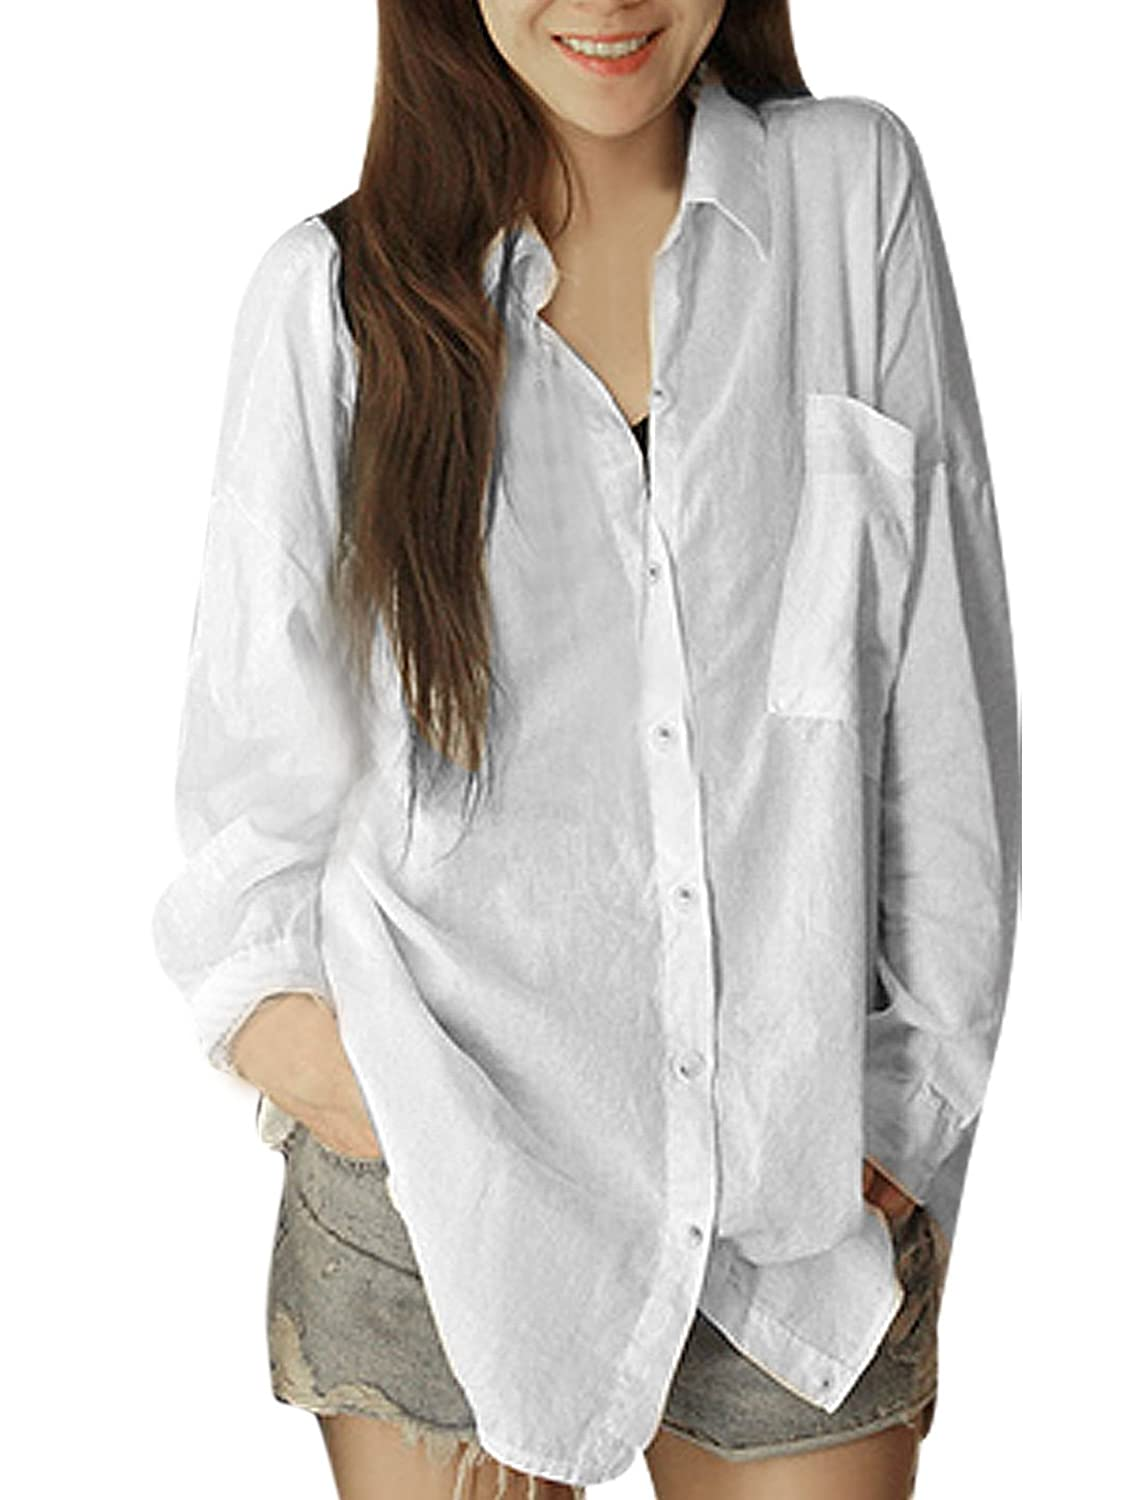 Women Button Up Long Sleeve Point Collar Shirt White S at Amazon ...